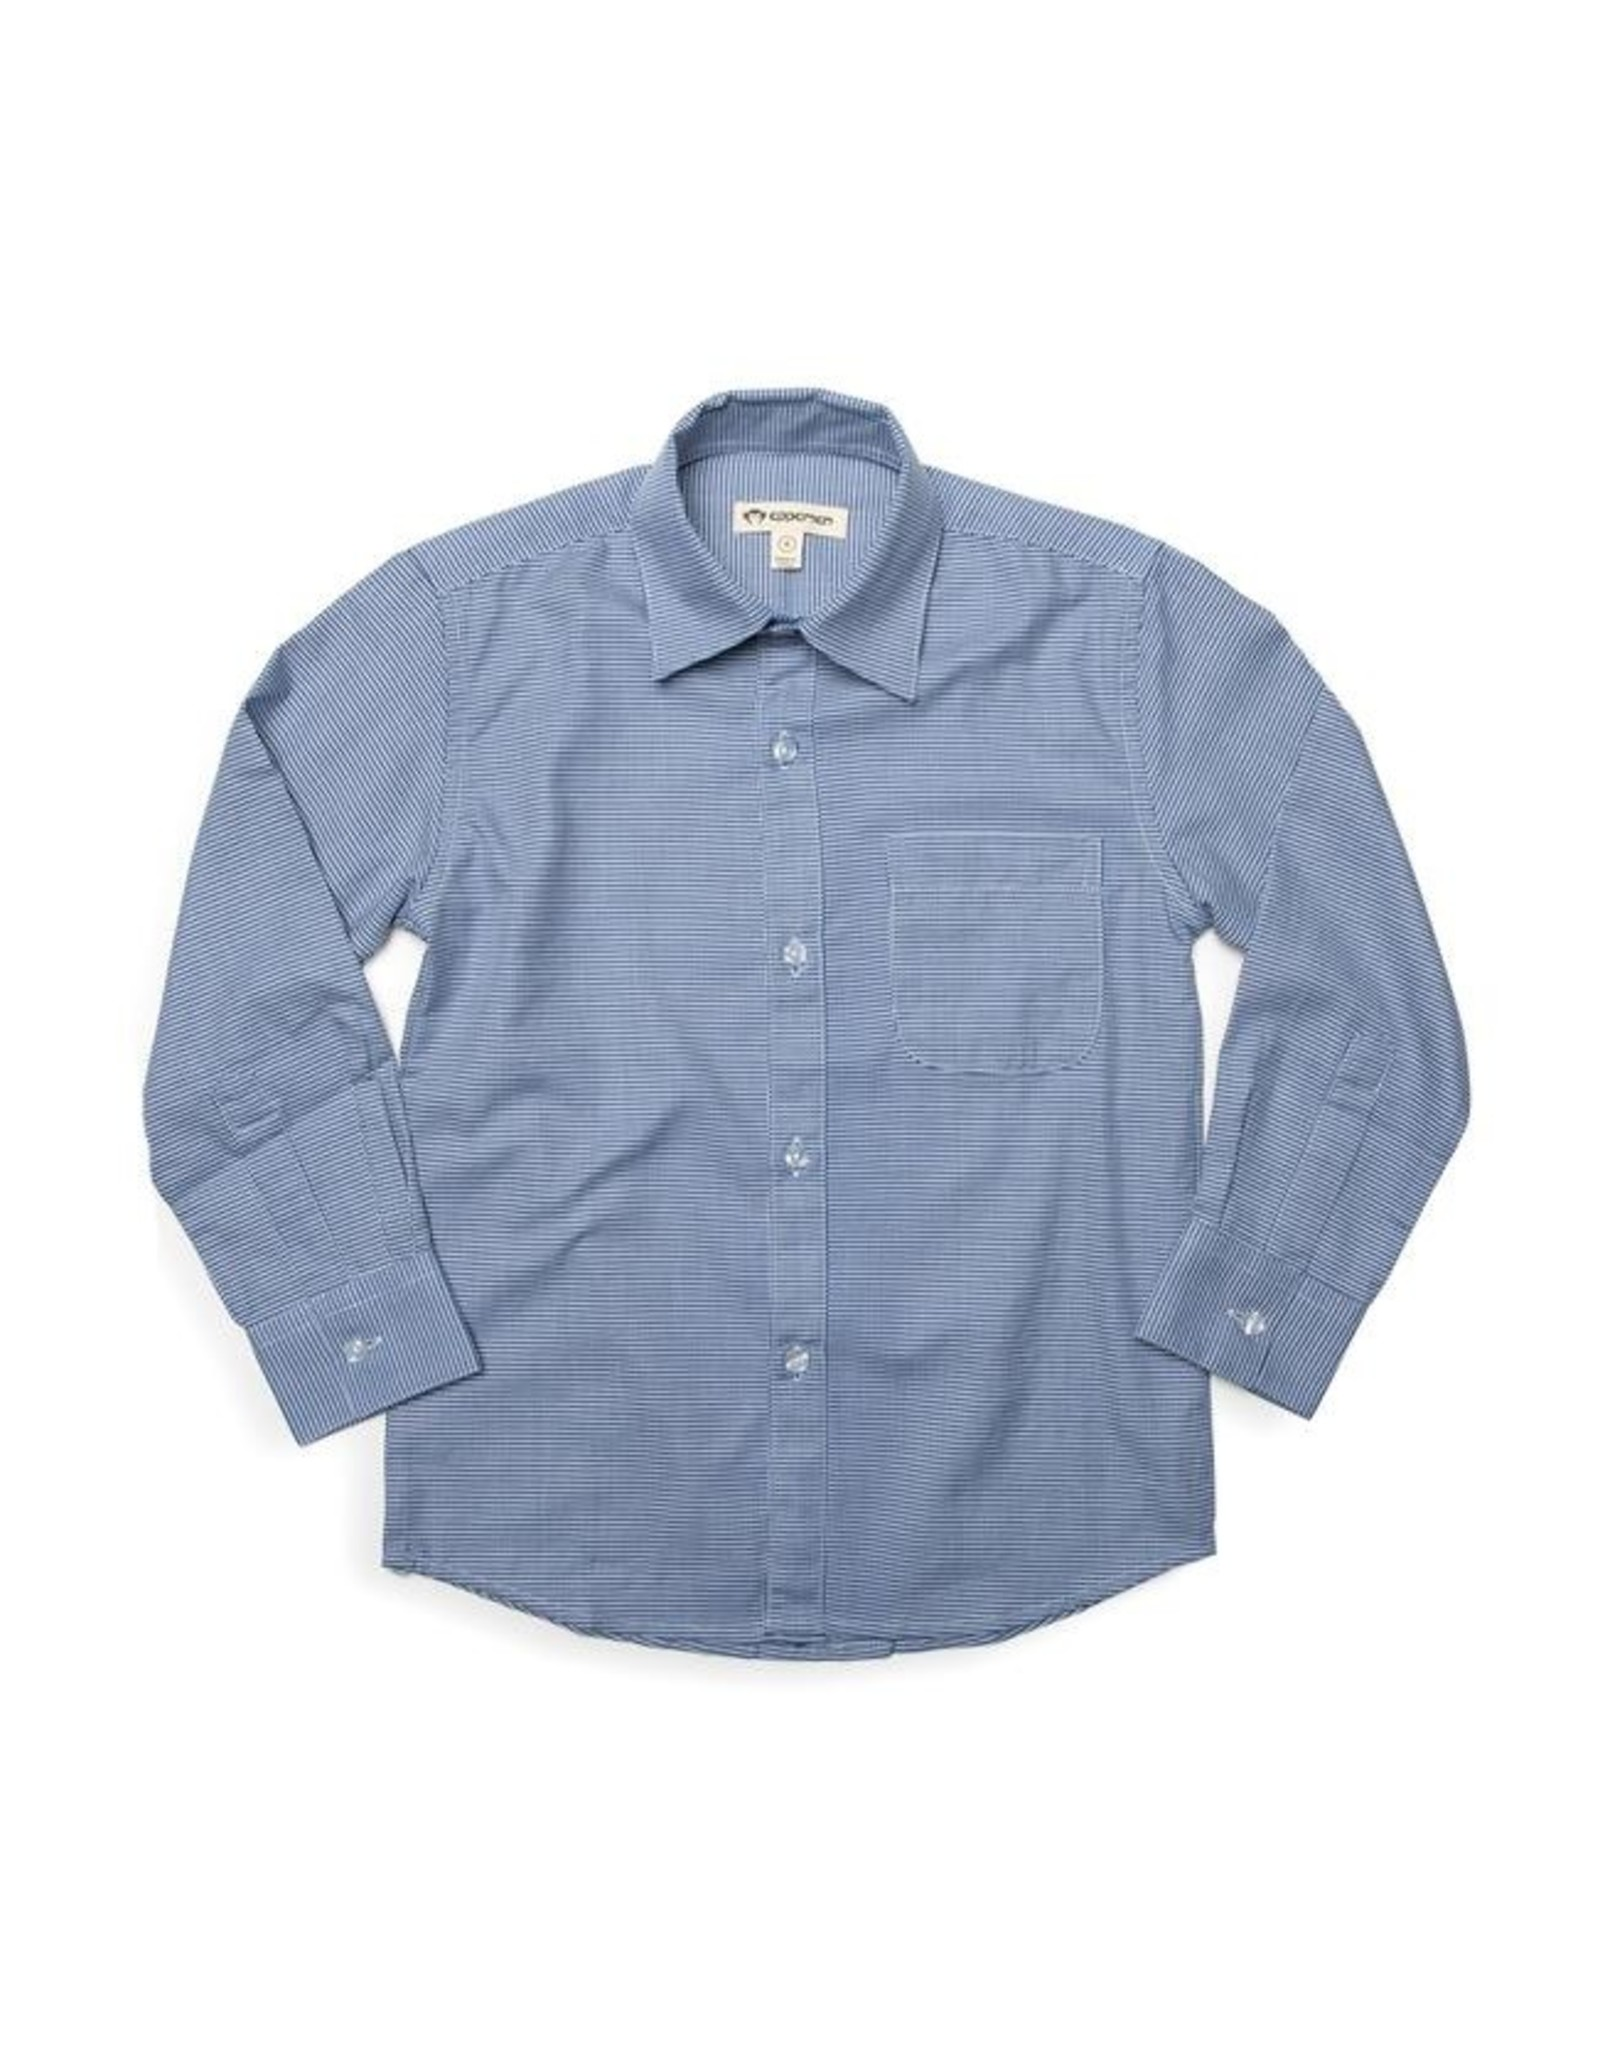 Appaman The Standard Shirt in Navy Houndstooth